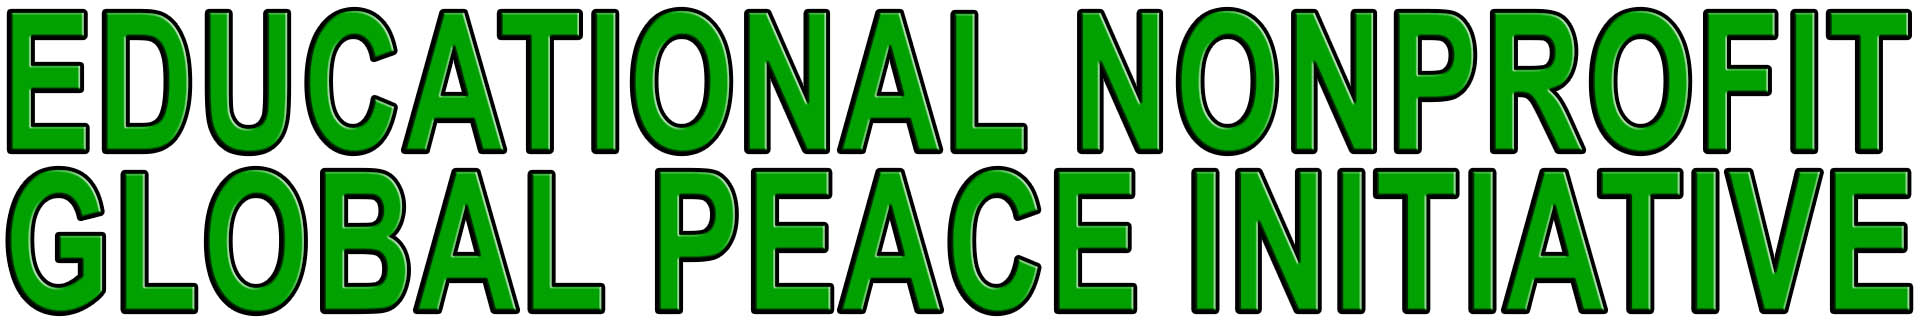 EDUCATIONAL NONPROFIT GLOBAL PEACE INITIATIVE